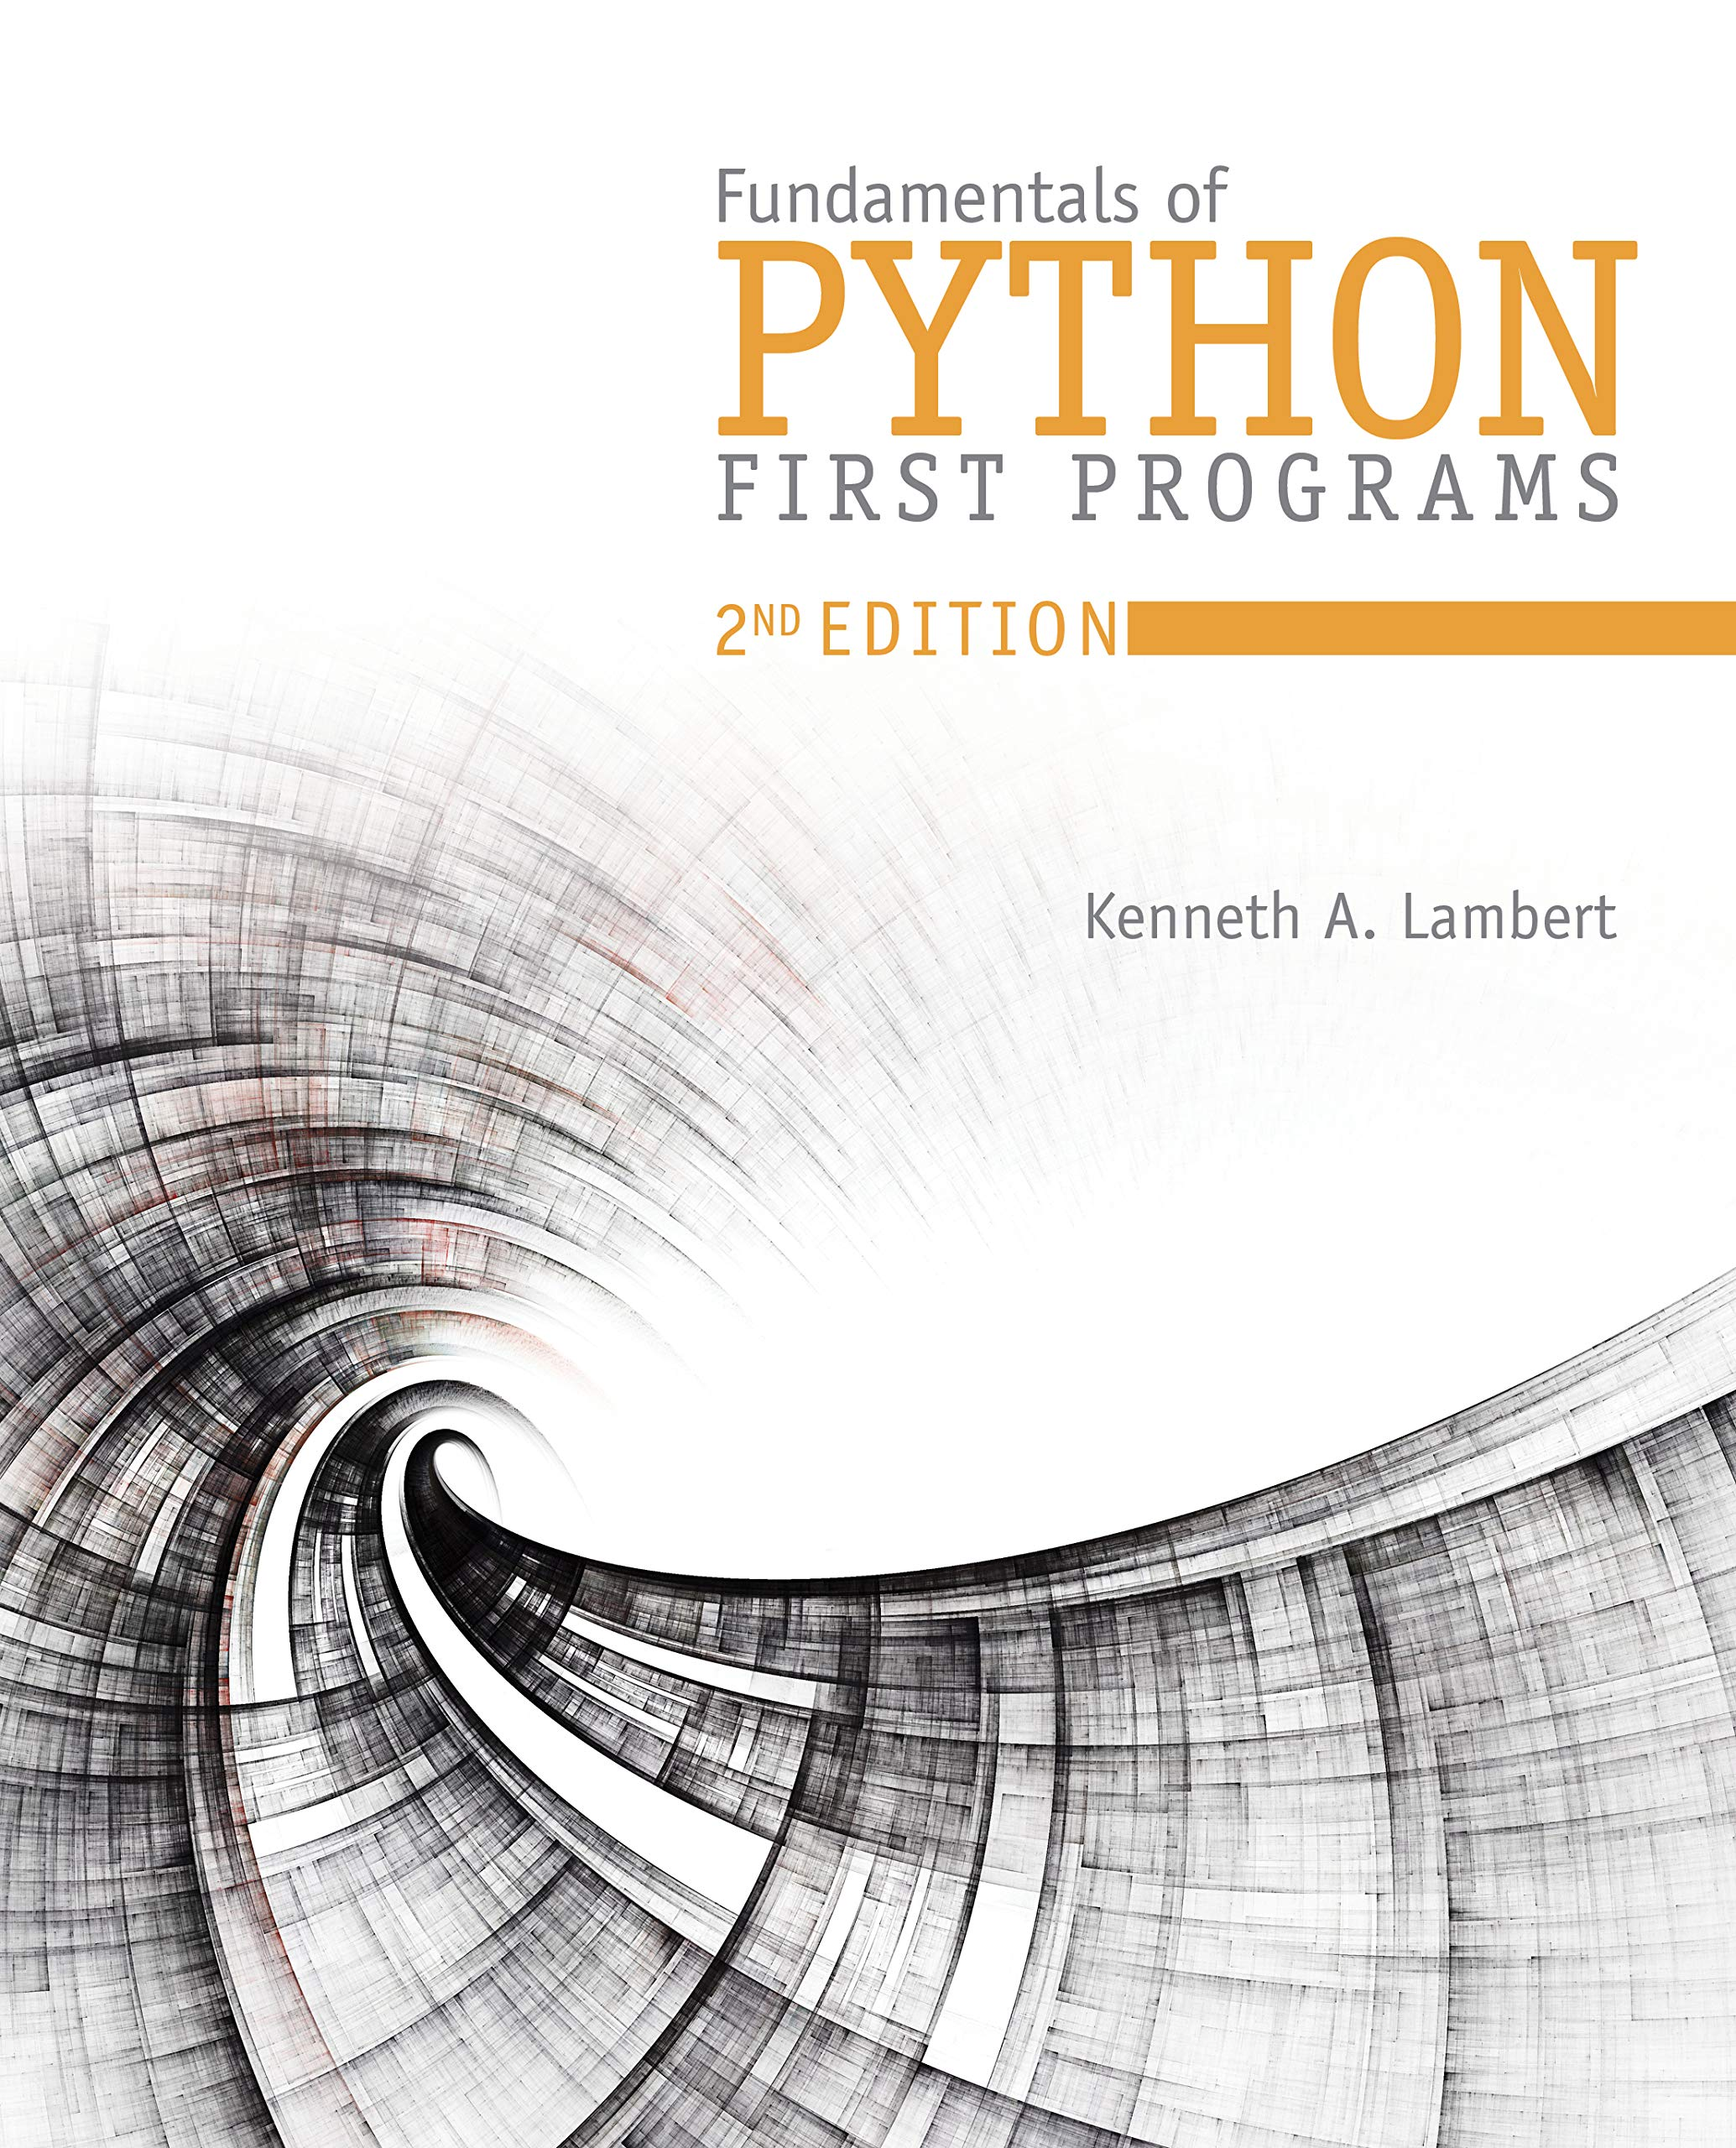 MindTap Computer Science for Lambert's Fundamentals of Python: First Programs  - 6 months -  2nd Edition [Online Courseware] by Cengage Learning